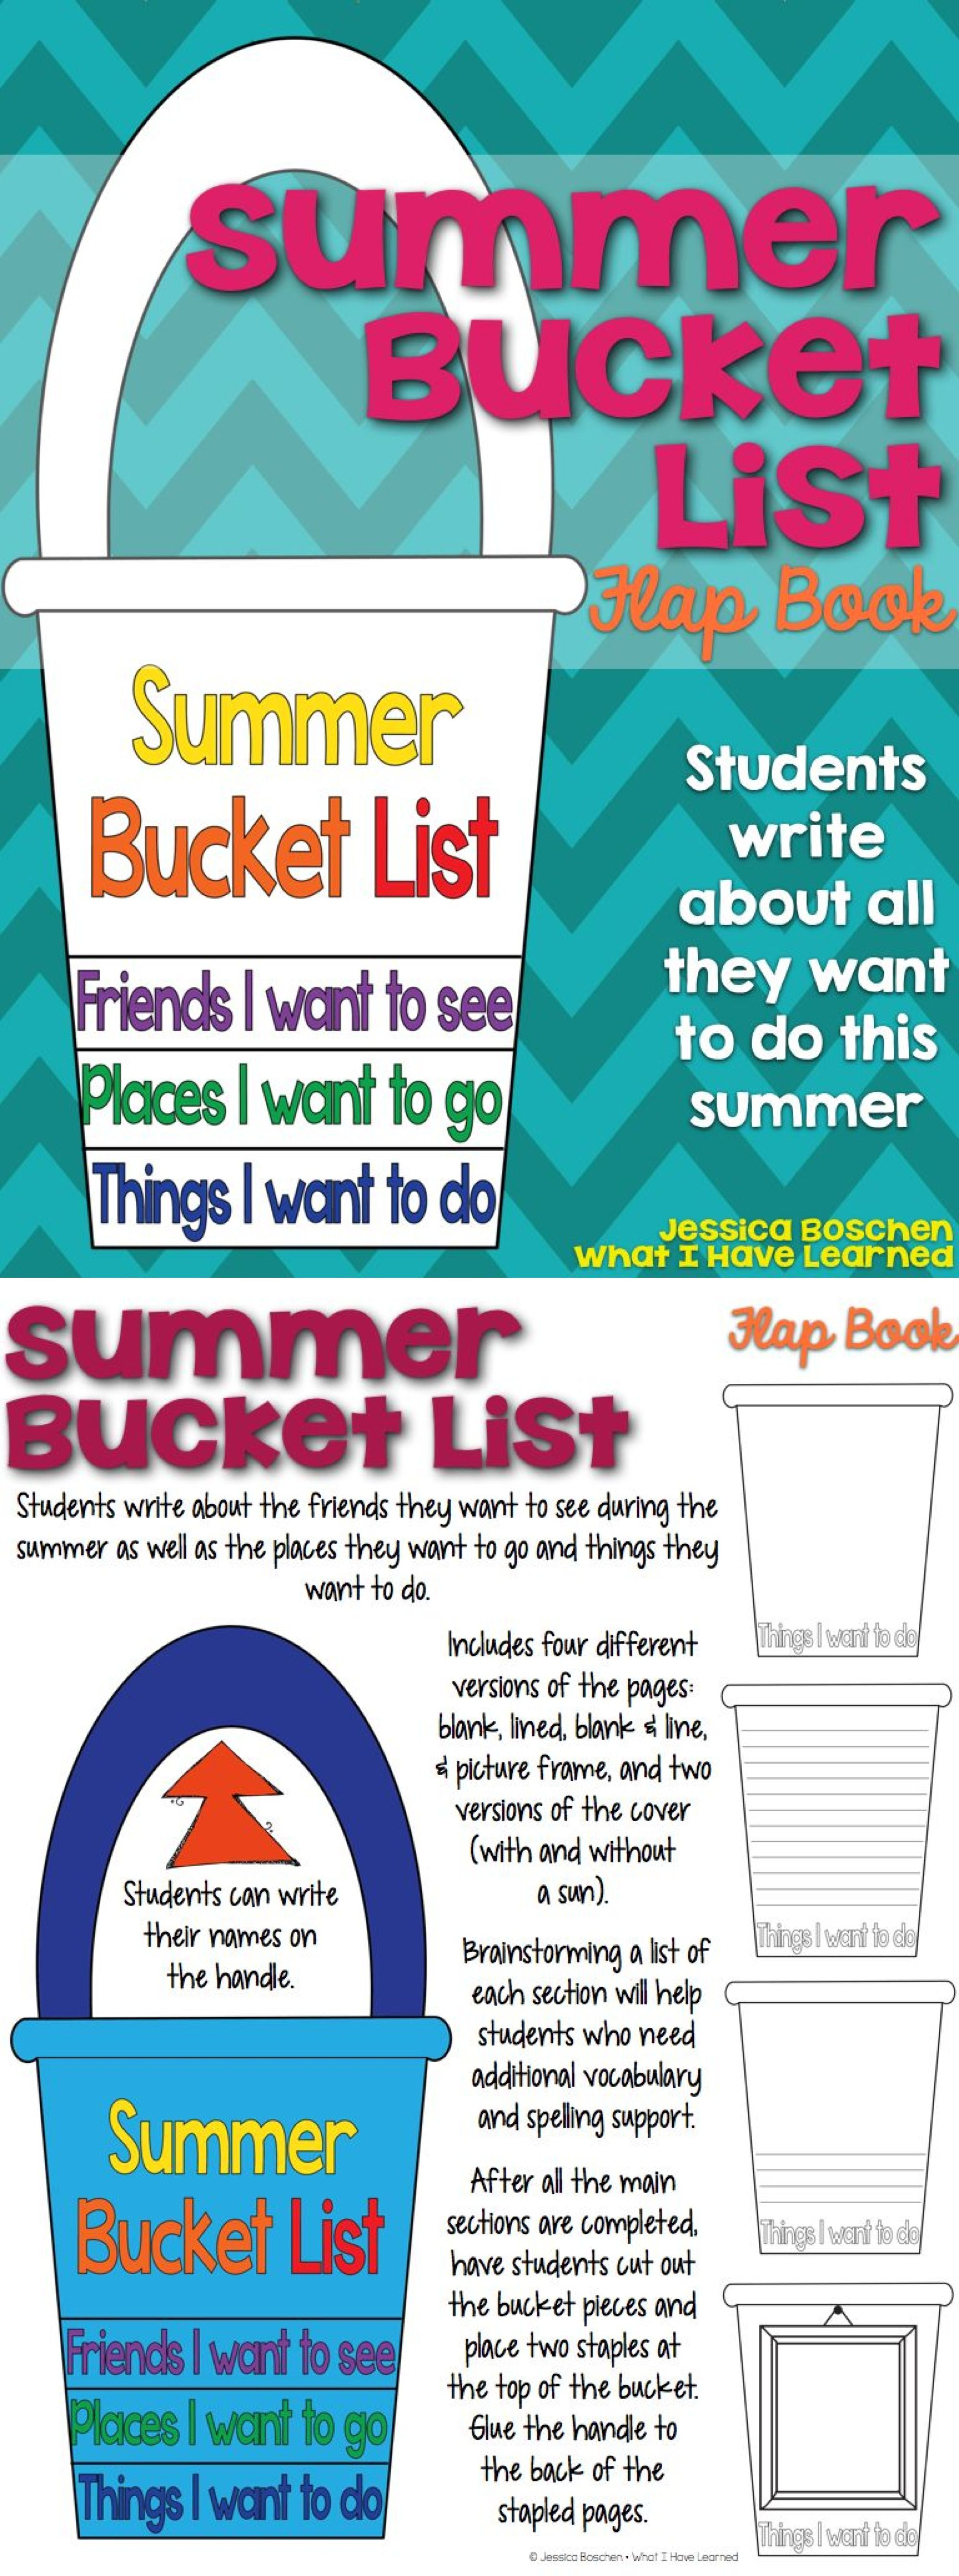 Summer Bucket List Flap Book.  A fun craftivity for the end of the year where students tell about what they want to do during the summer.  #craftivity #summerbucketlist #endoftheyear